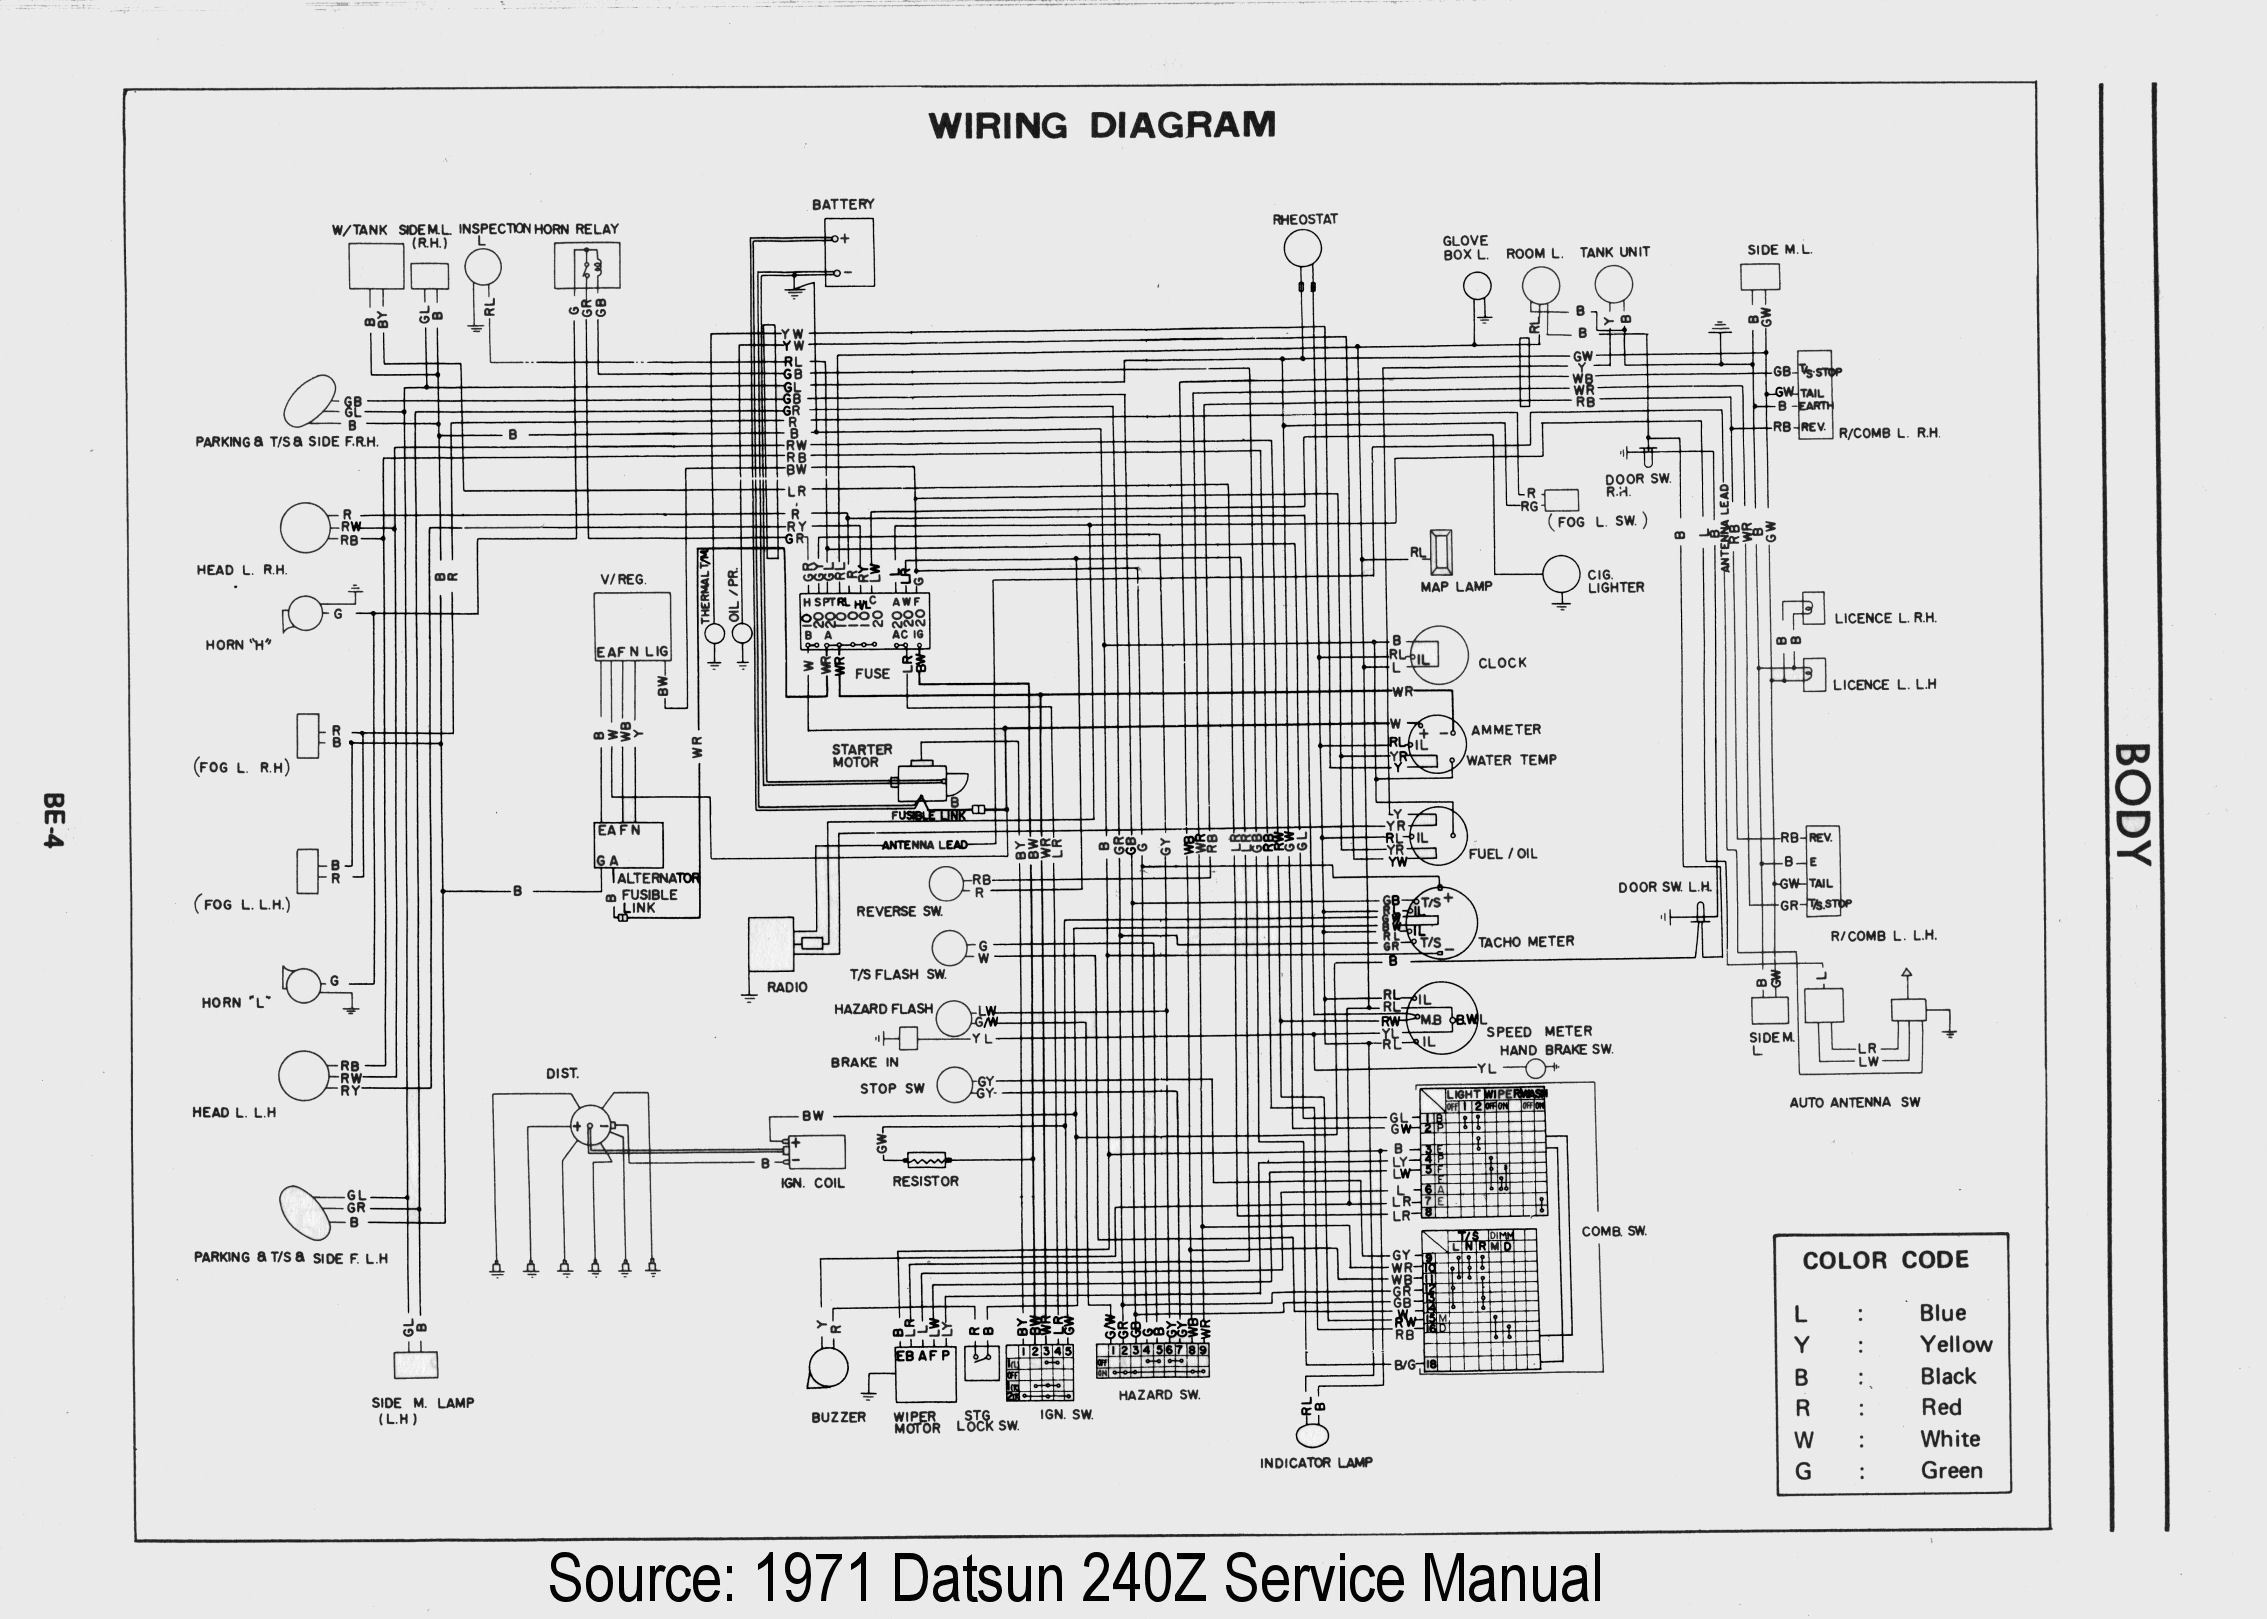 hight resolution of generic wiring diagram wiring diagram detailed crazy cart wiring diagram generic wiring diagram